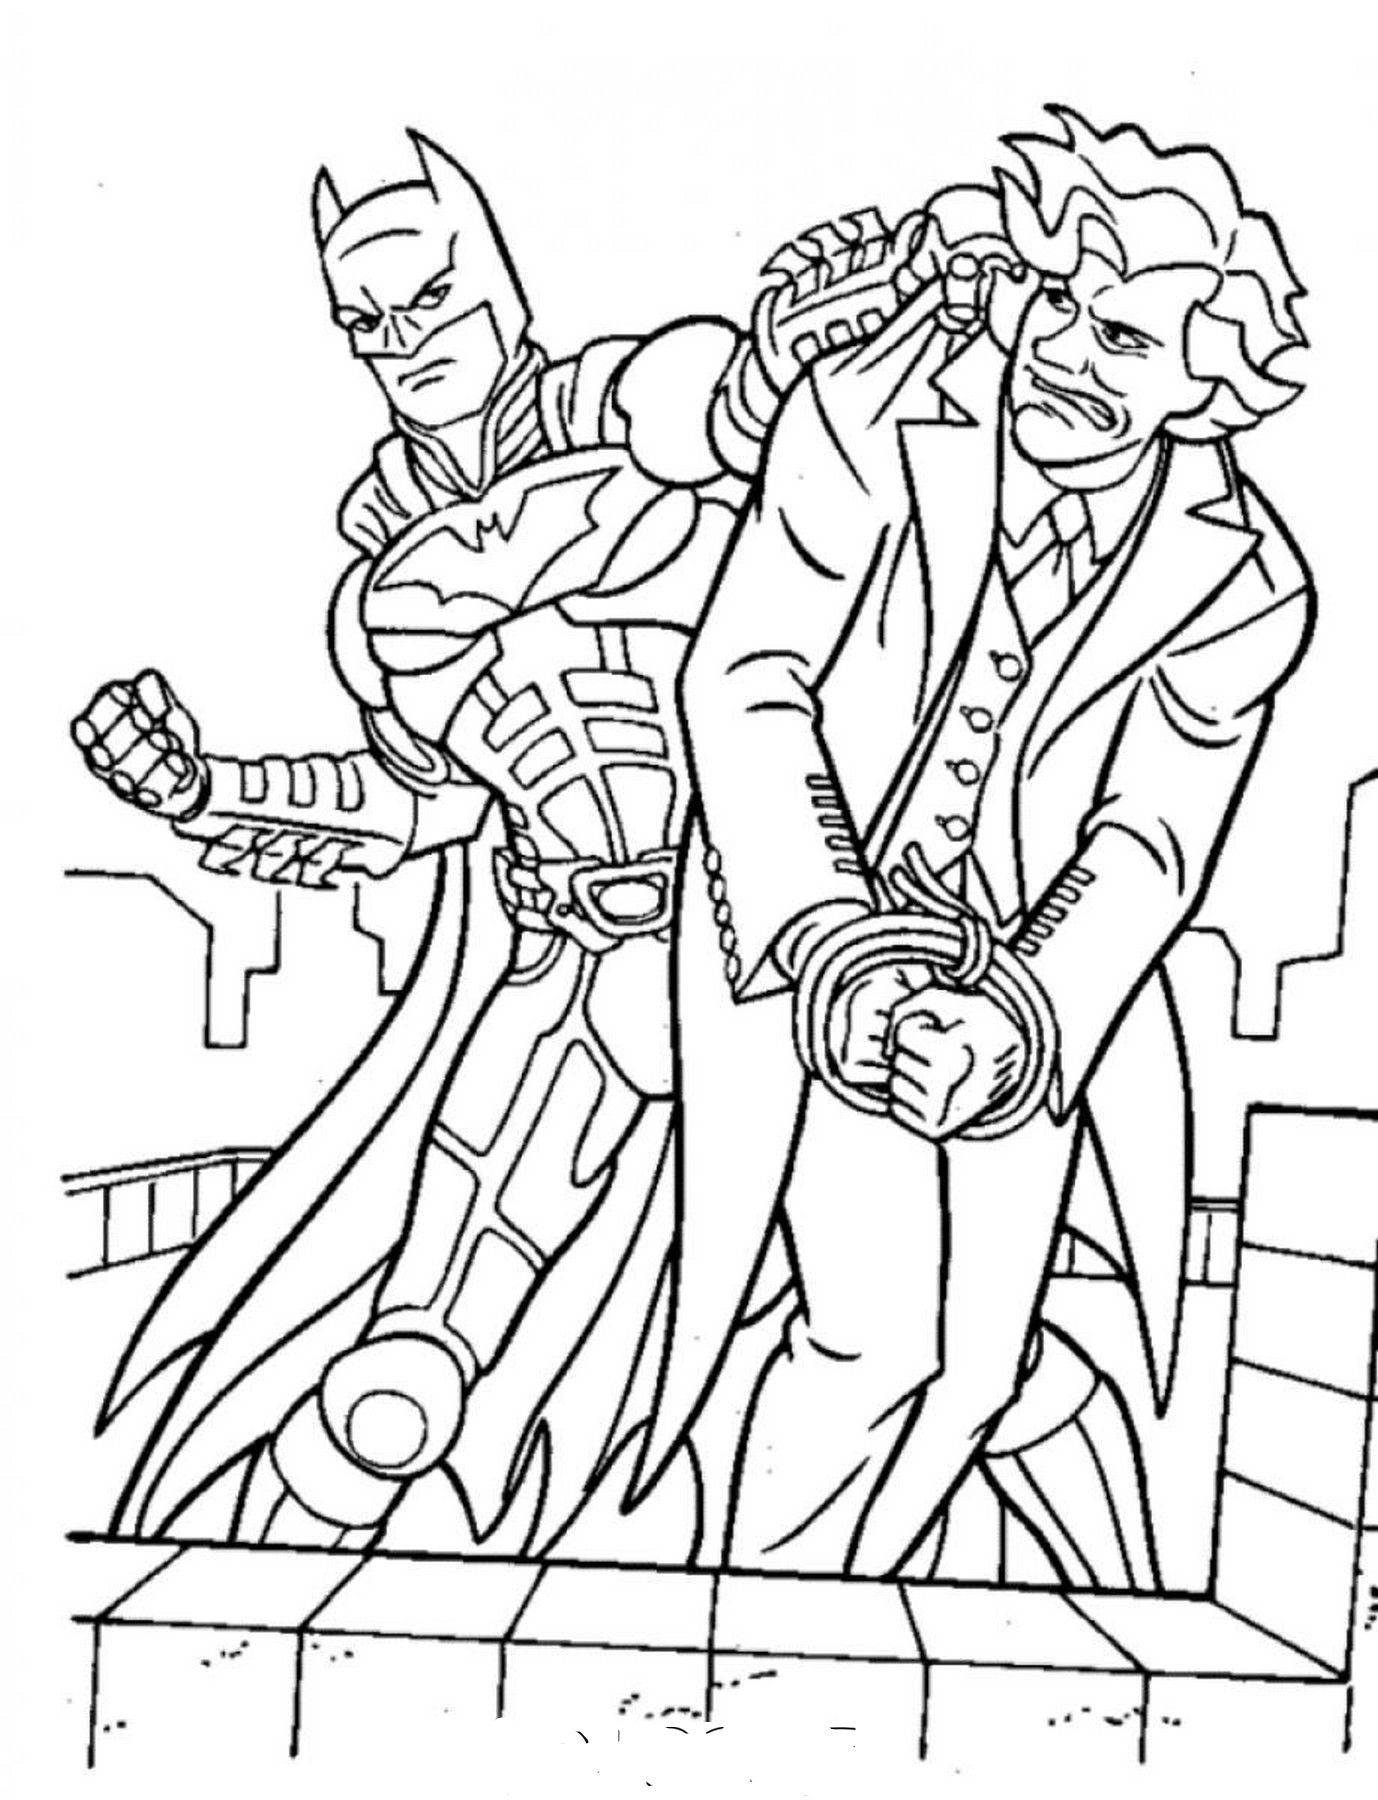 Batman Catch Clown Batman Coloring Pages Cartoon Coloring Pages